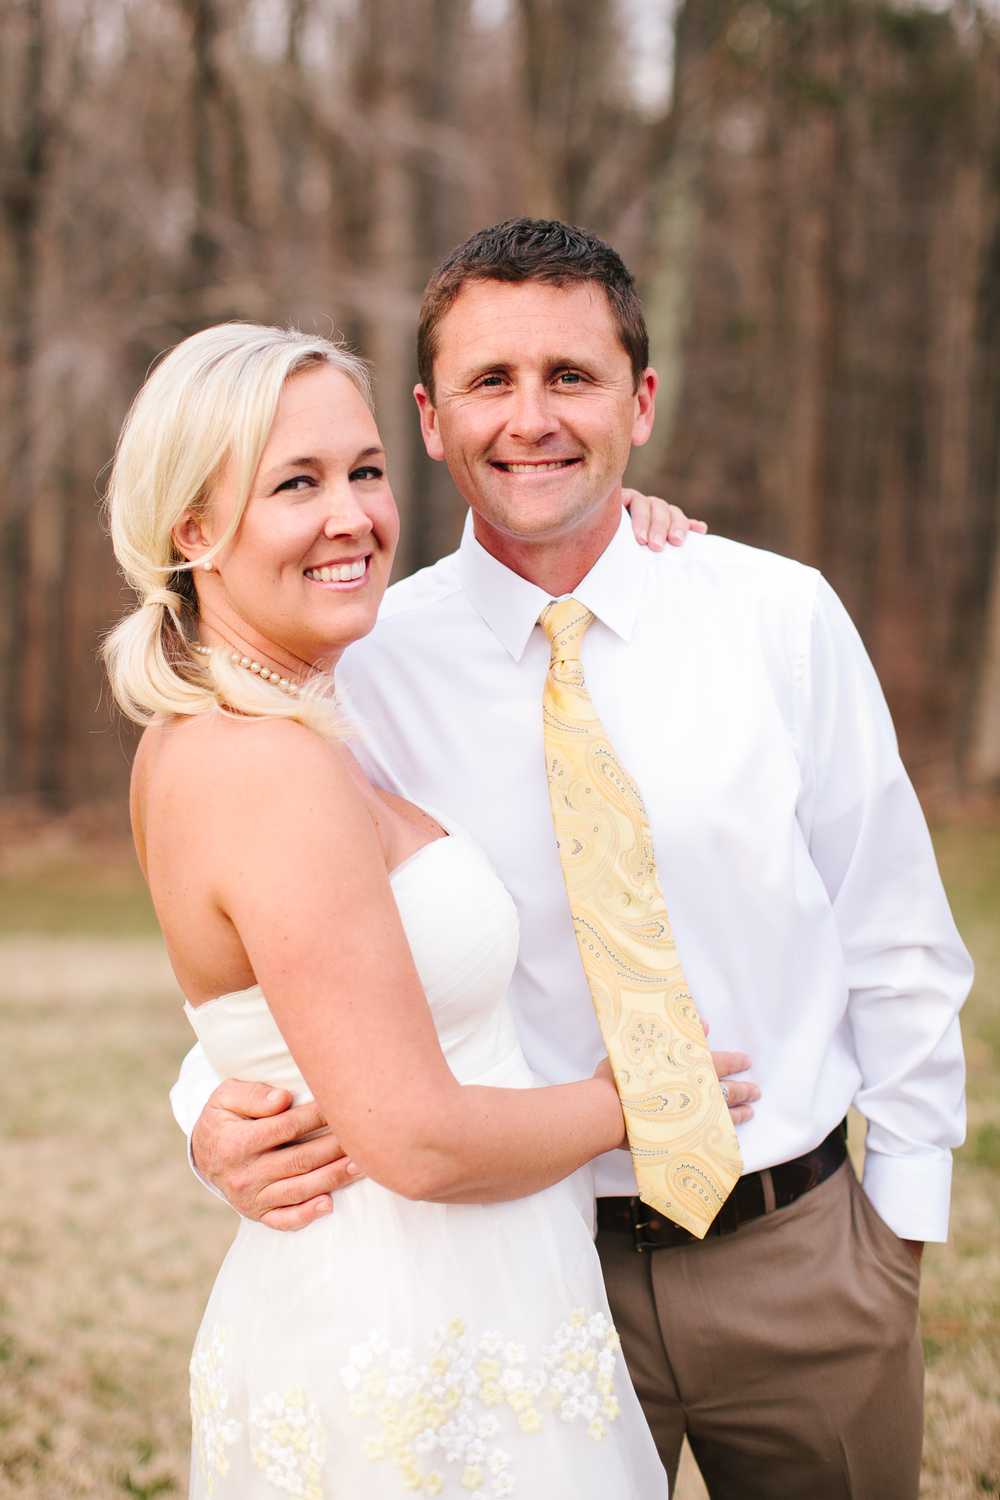 north_carolina_wedding_portraits_tierney_cyanne_photography_1442.jpg